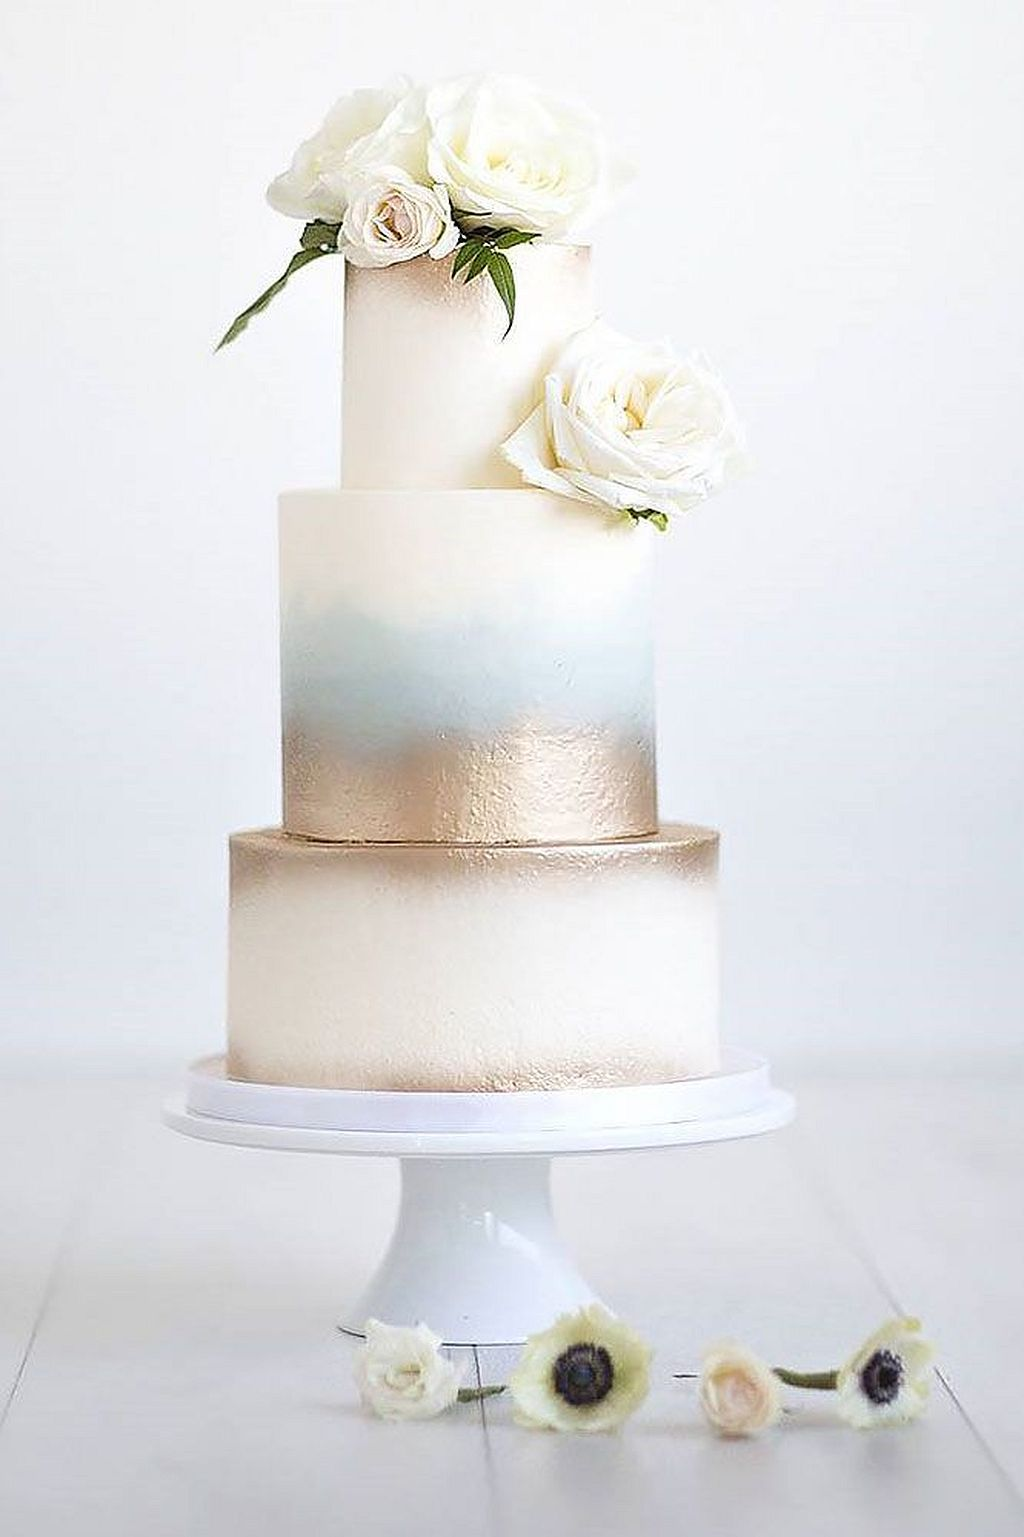 Wedding decoration ideas in kerala   Simple and Elegant Wedding Cake Ideas  Elegant wedding cakes